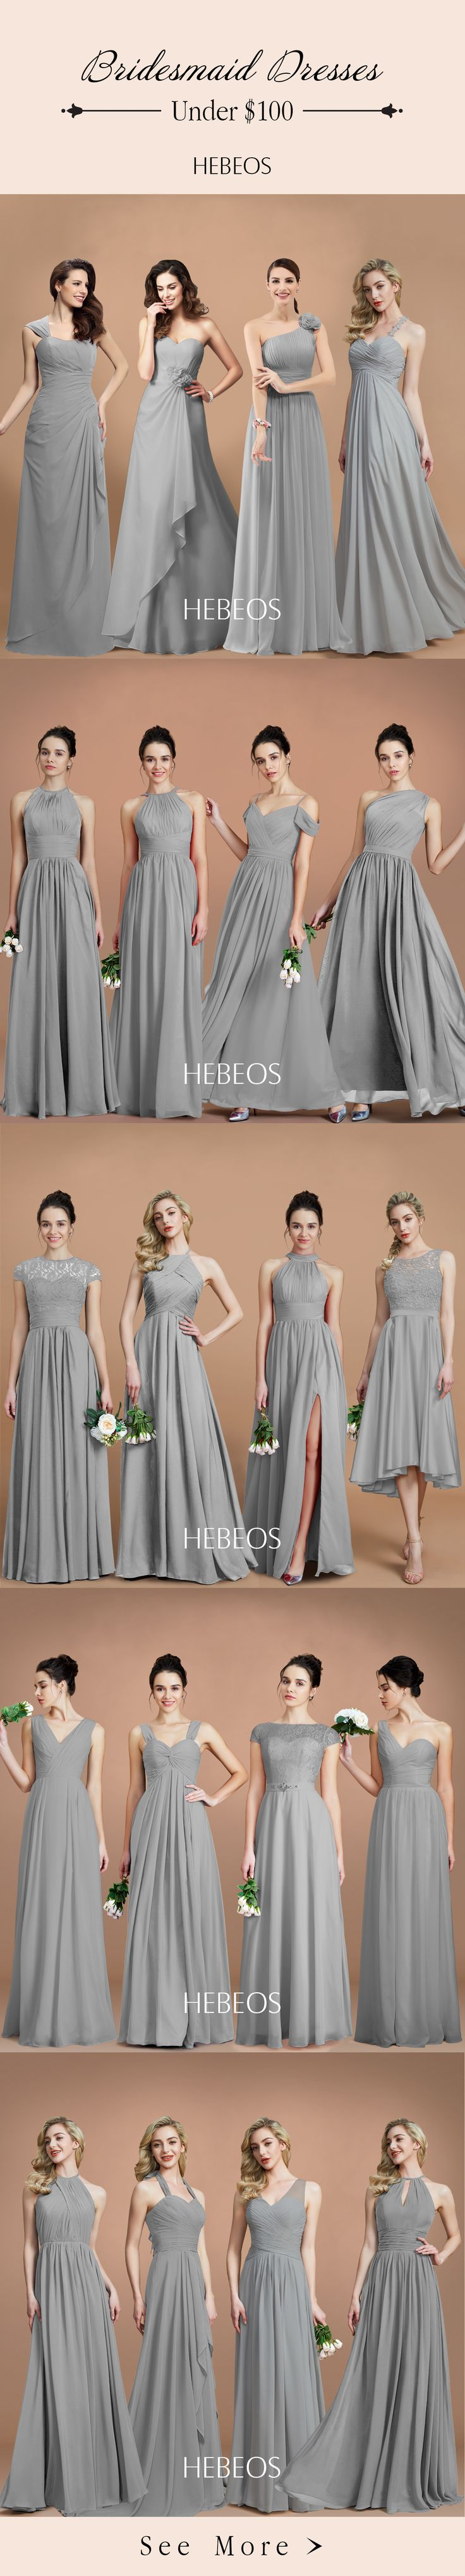 Browse our selection of beautiful grey & silver bridesmaid dresses. Your leading ladies will shine in gorgeous metallic dresses on your big day. Shop now! #HEBEOS #Bridesmaiddresses #Silverwedding